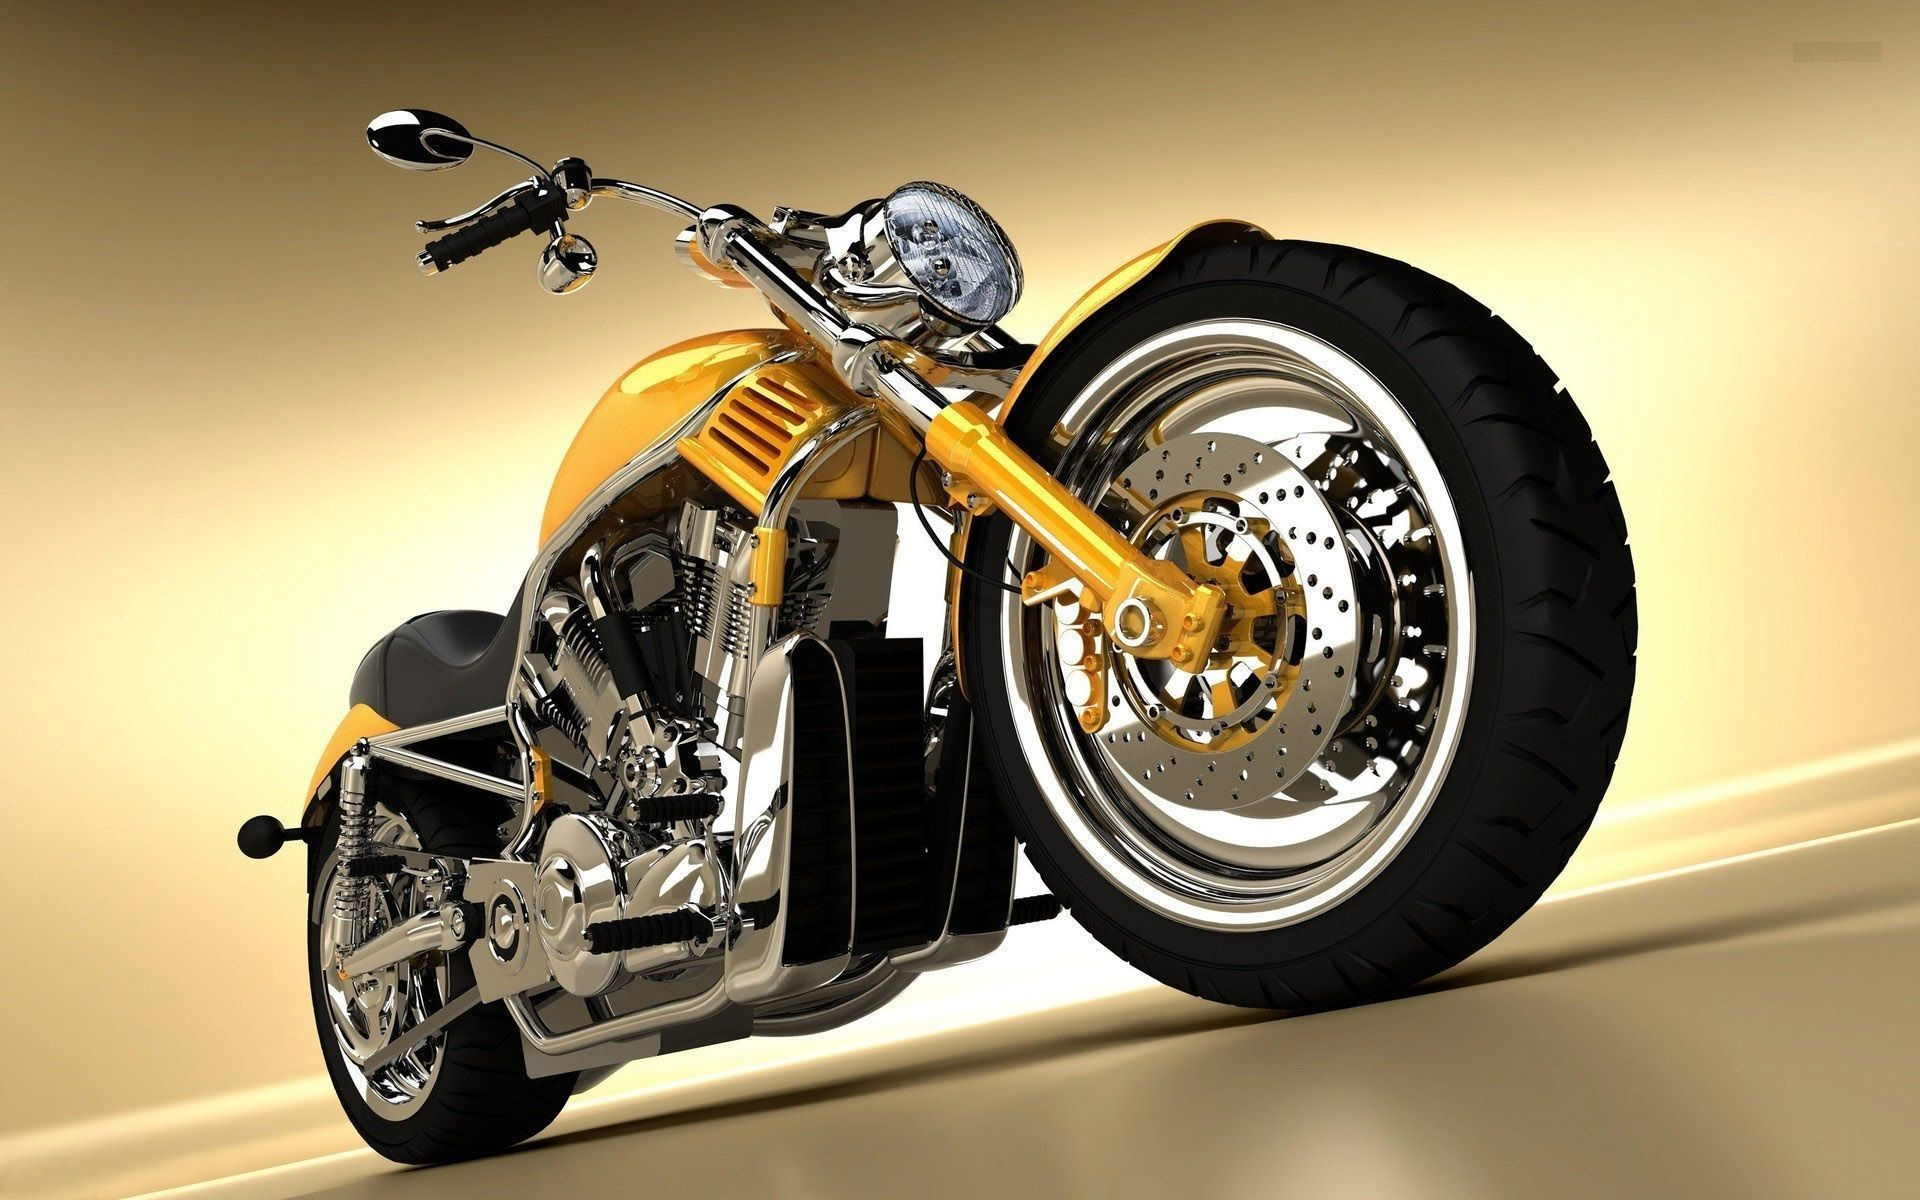 Harley Davidson HD Wallpapers Download Desktop Wallpaper Images 1920x1200